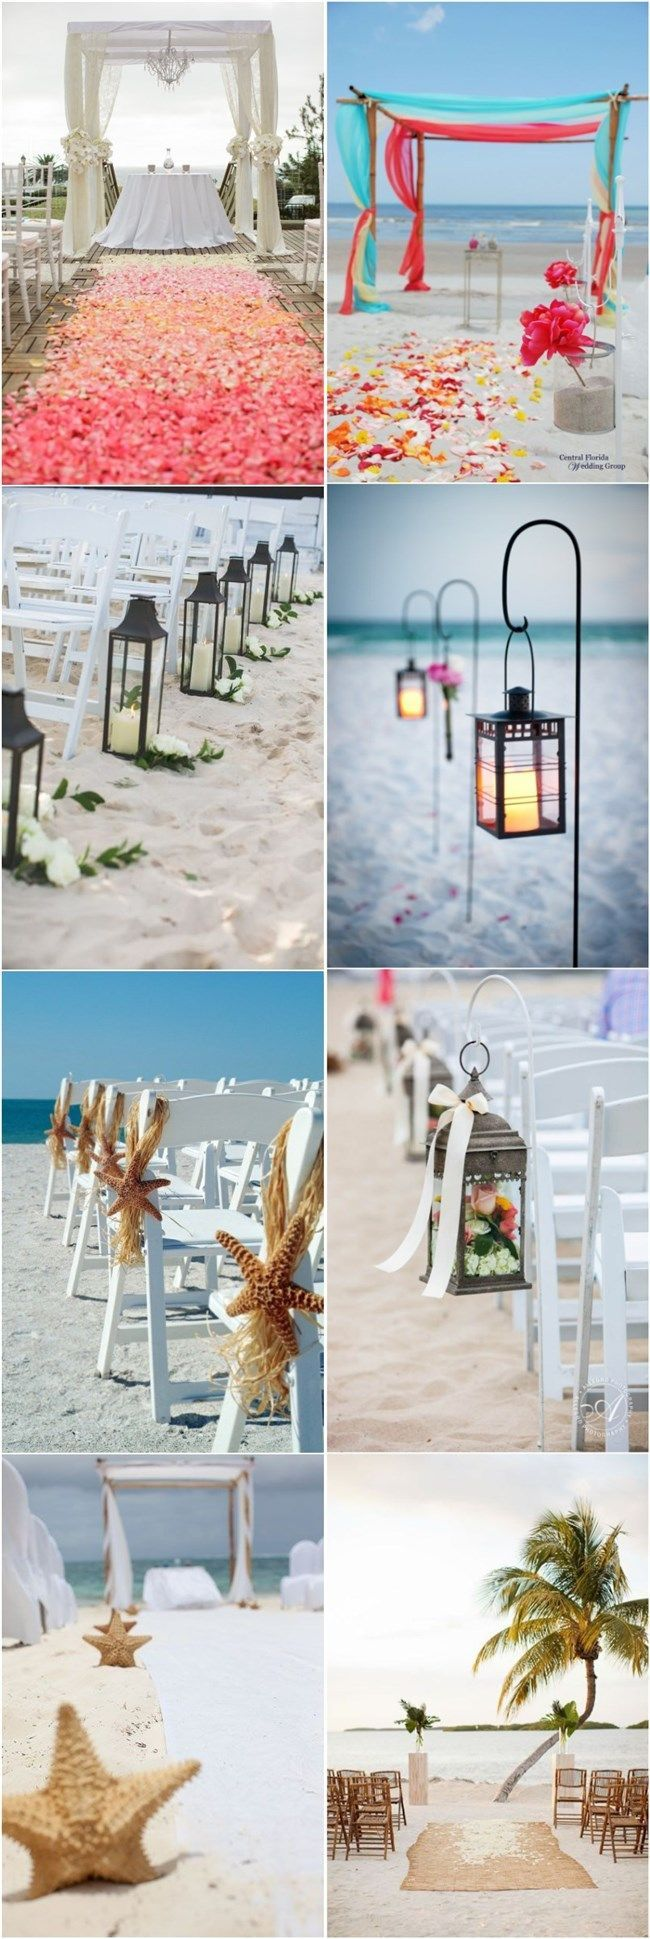 17 Best 1000 images about Beach Wedding Ideas on Pinterest Starfish